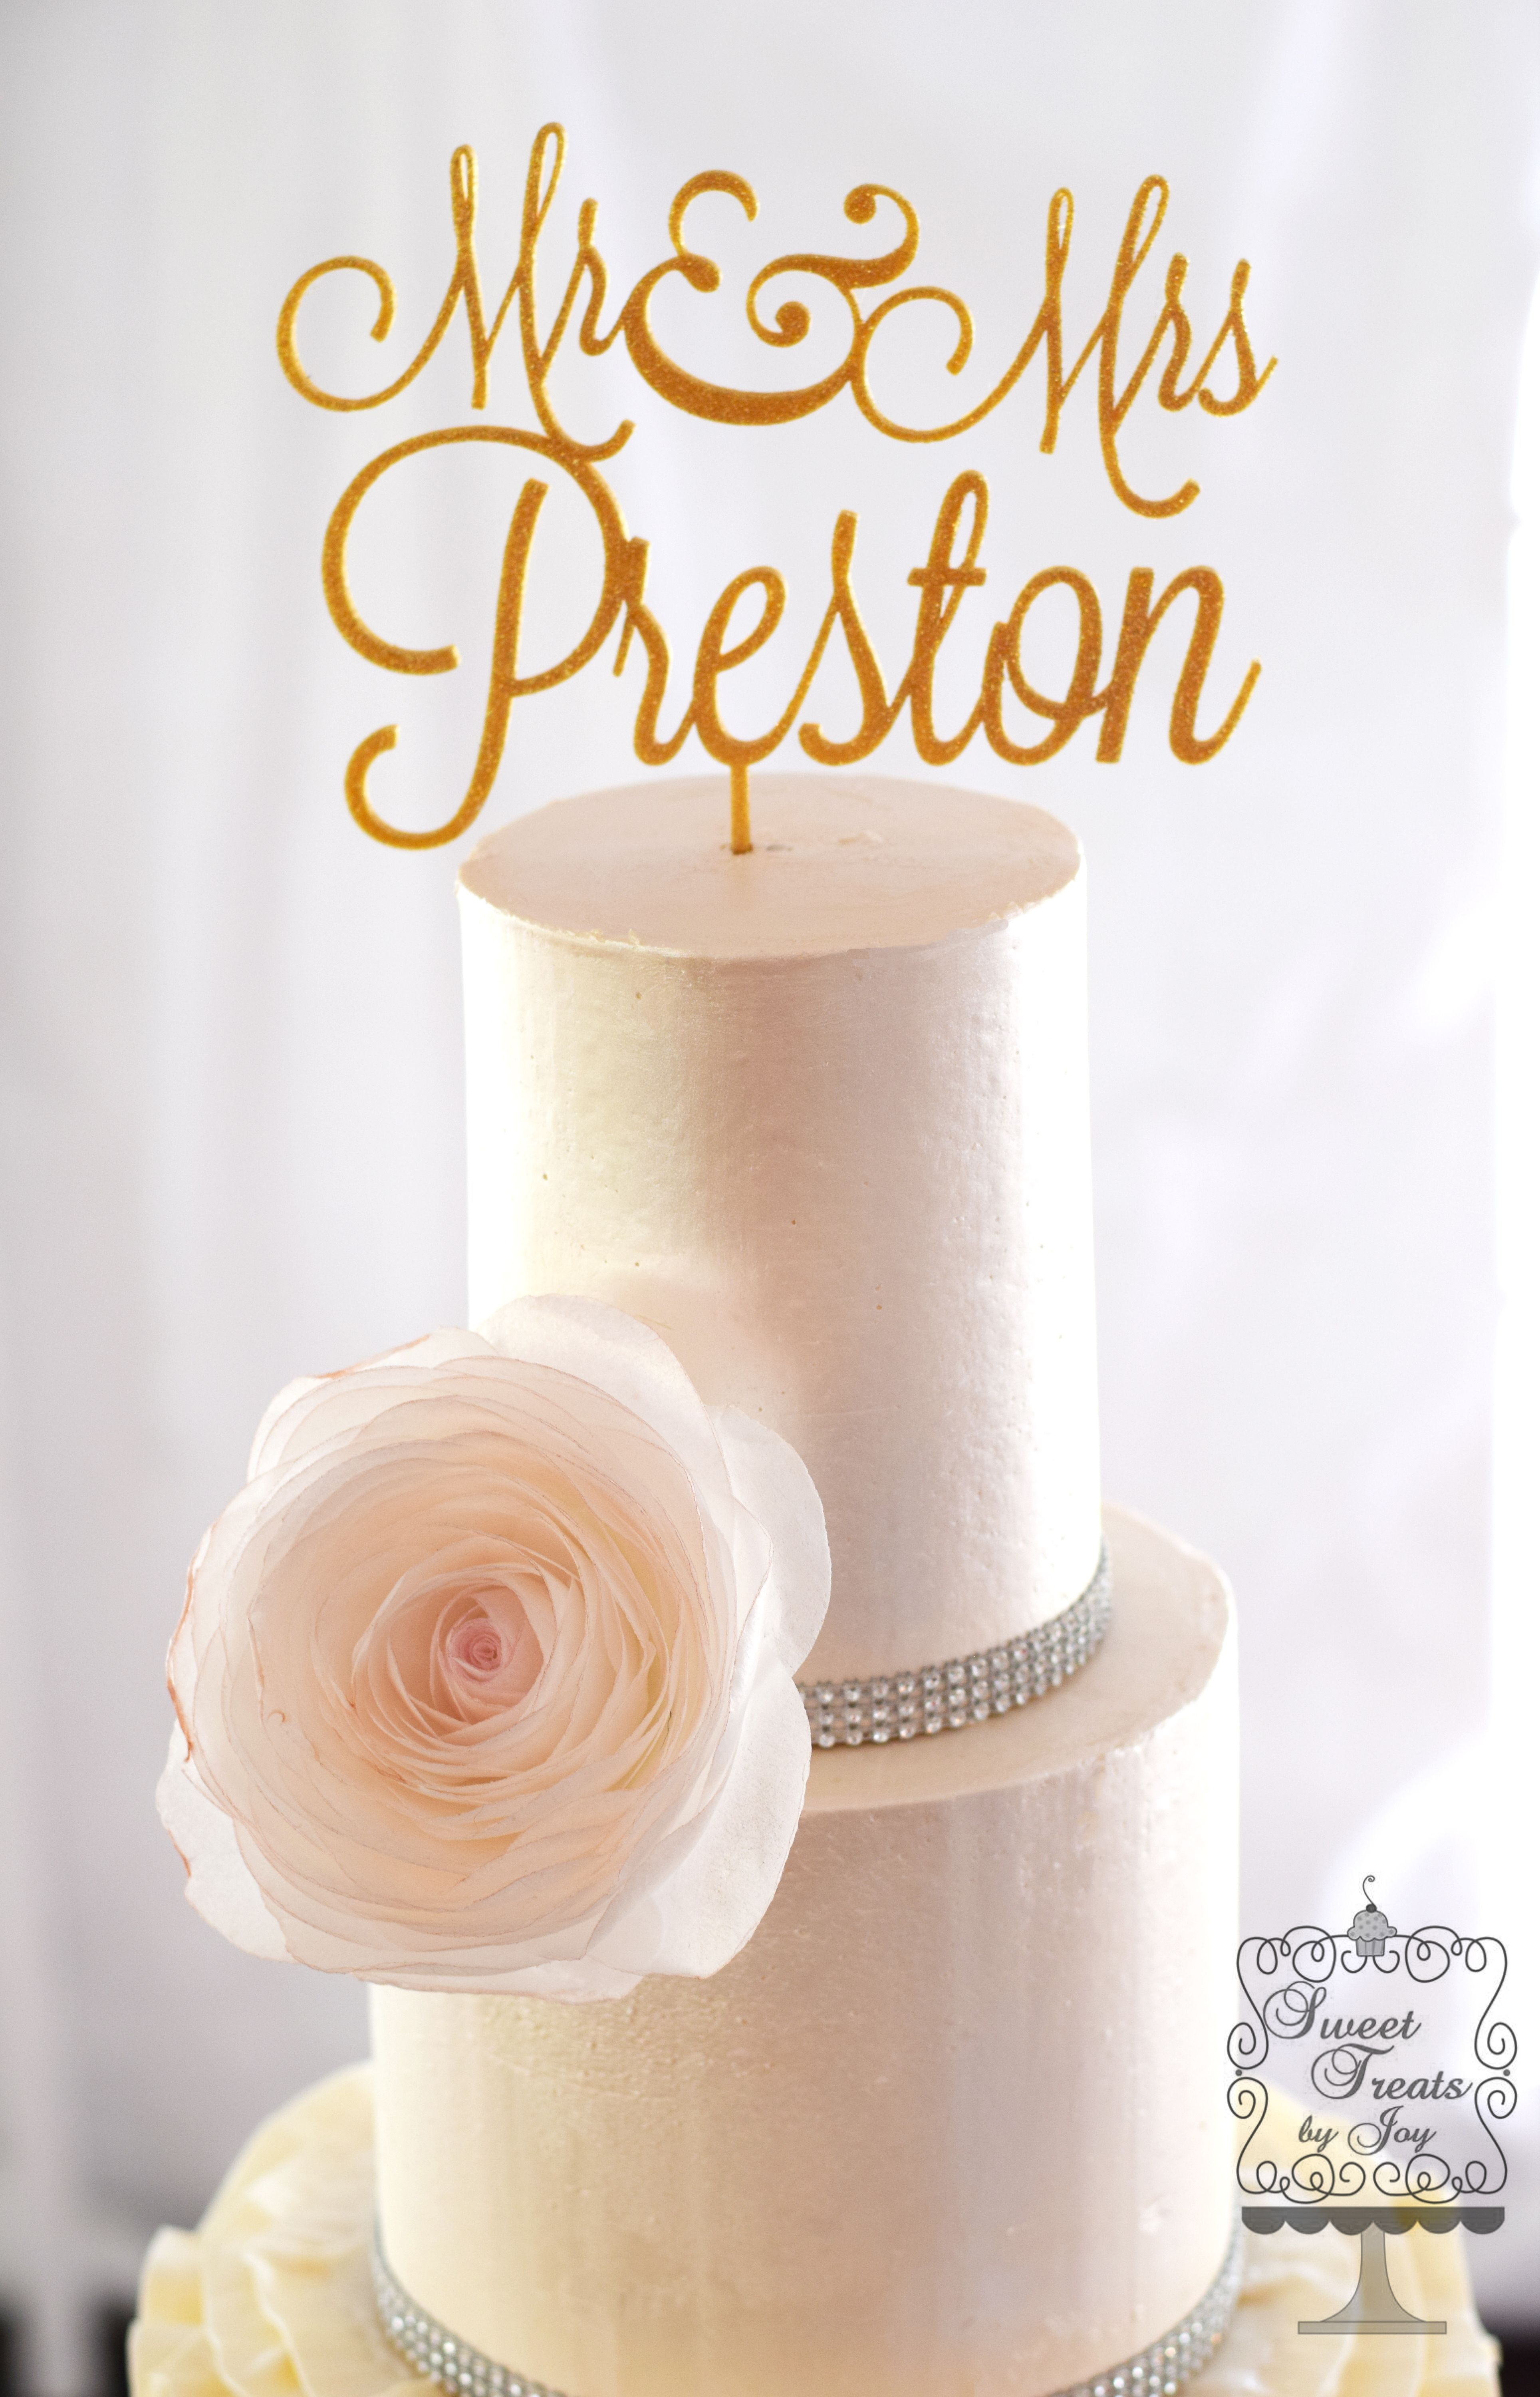 Buttercream wedding cake Champagne colored with ruffled rose